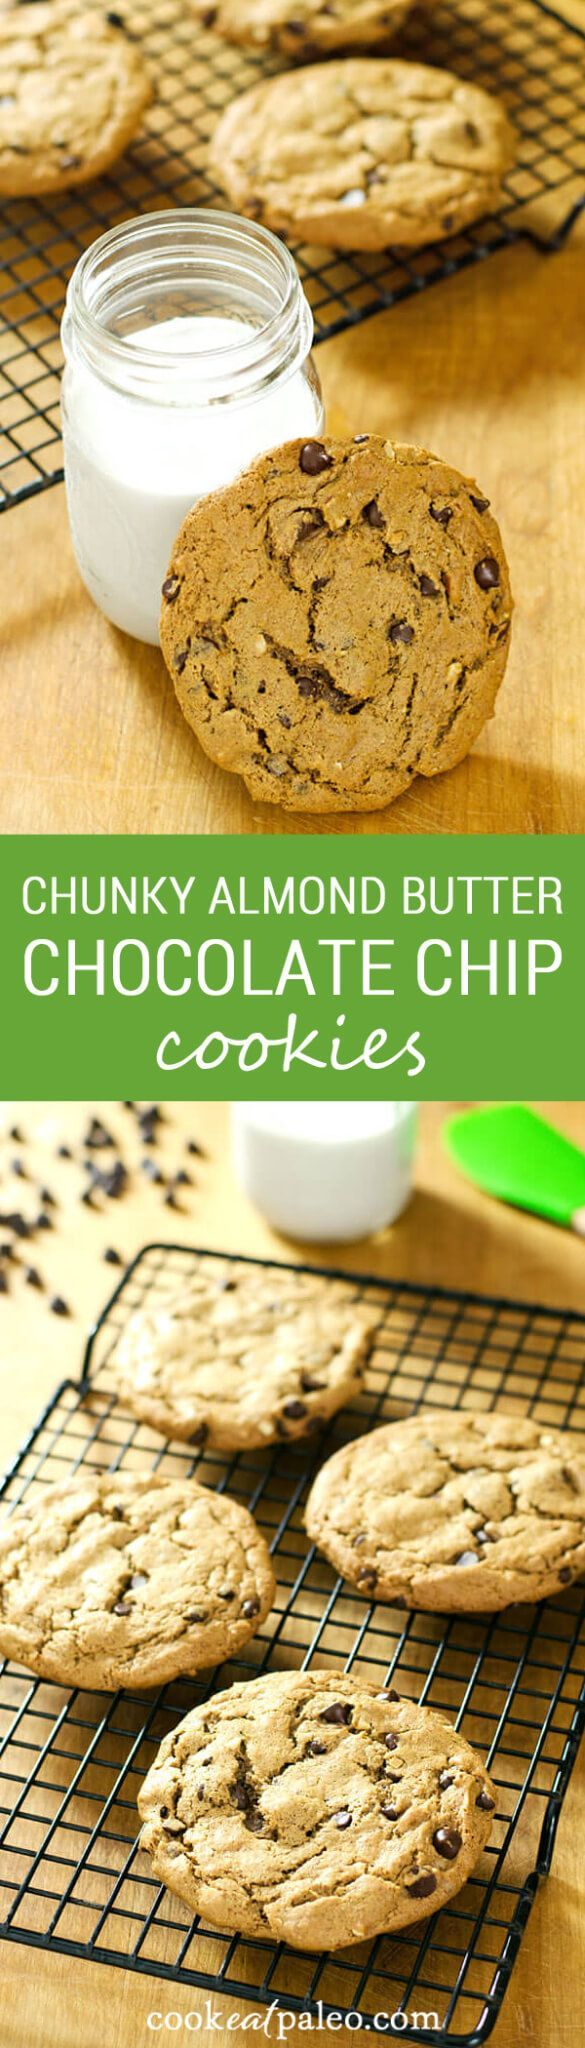 These chunky almond butter chocolate chip cookies are gluten-free, grain-free…